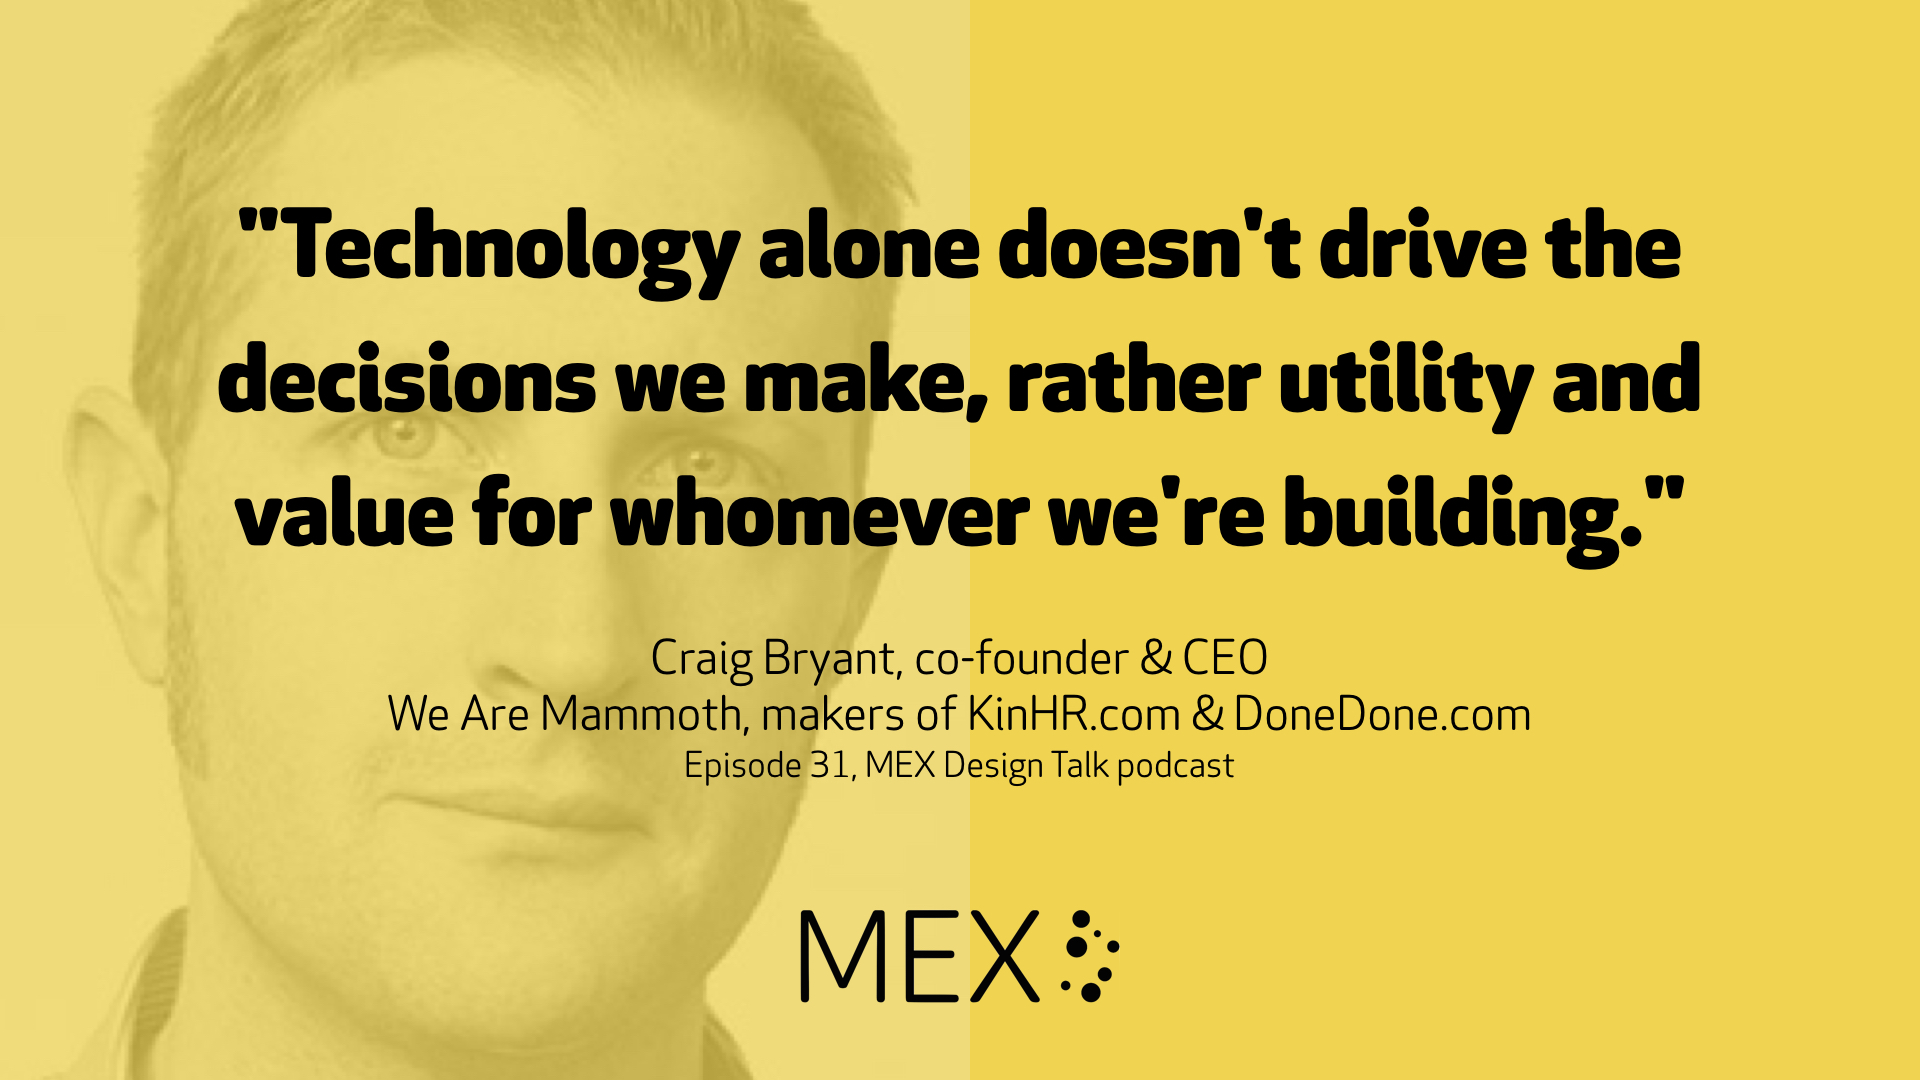 """Technology alone doesn't drive the decisions we make, rather utility and value for whomever we're building."" Craig Bryant, co-founder & CEO We Are Mammoth, makers of KinHR.com & DoneDone.com Episode 31, MEX Design Talk podcast"